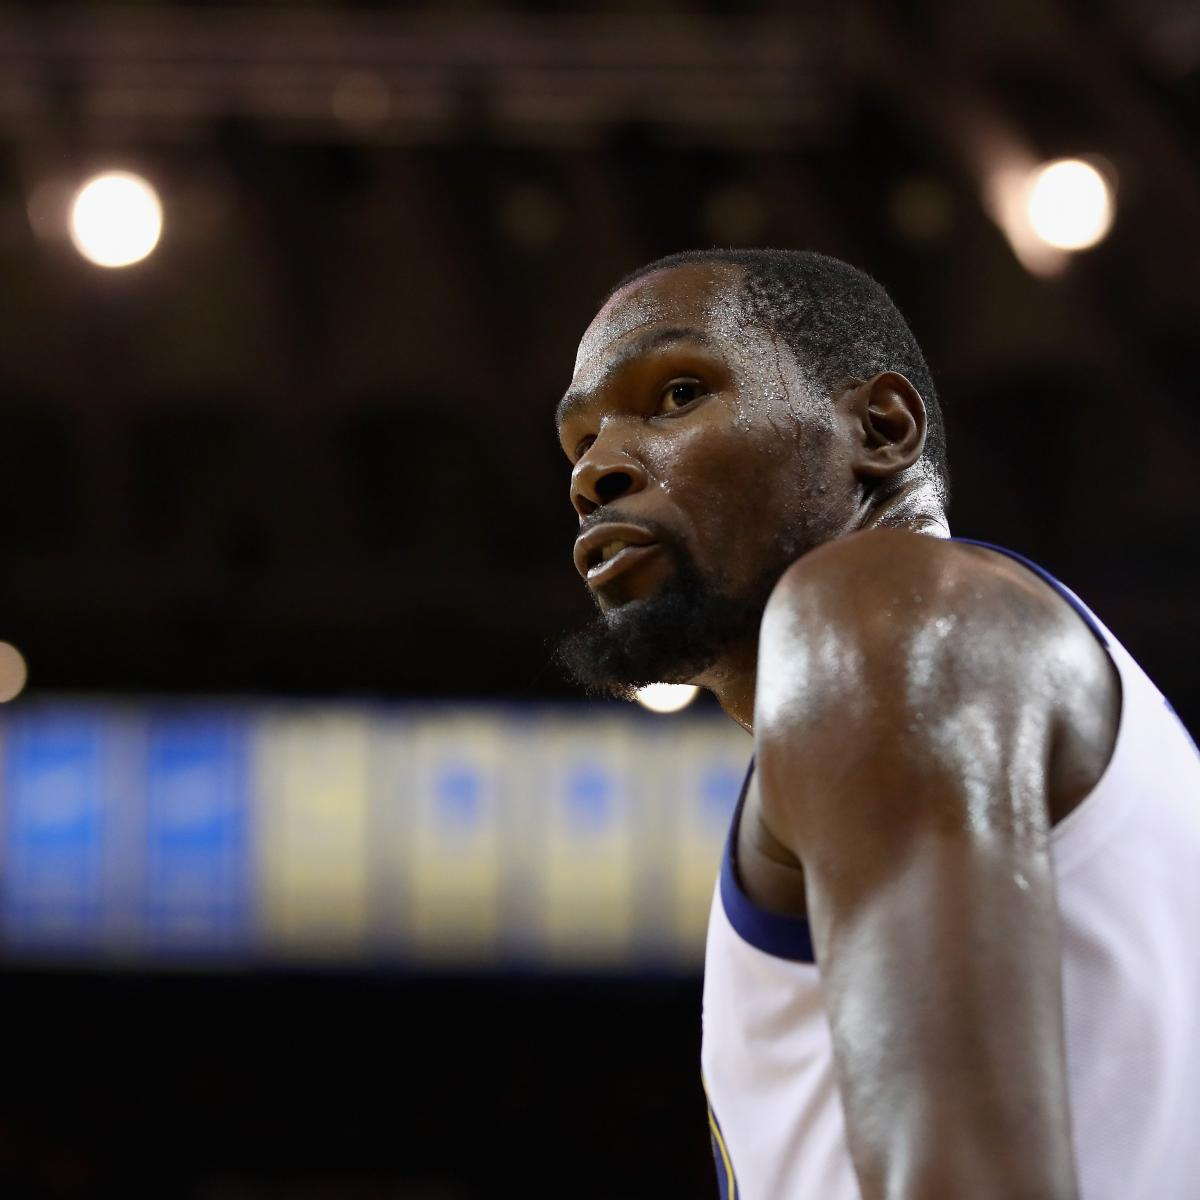 Kevin Durant on Upcoming Free Agency: I Just Want People to Focus on Basketball